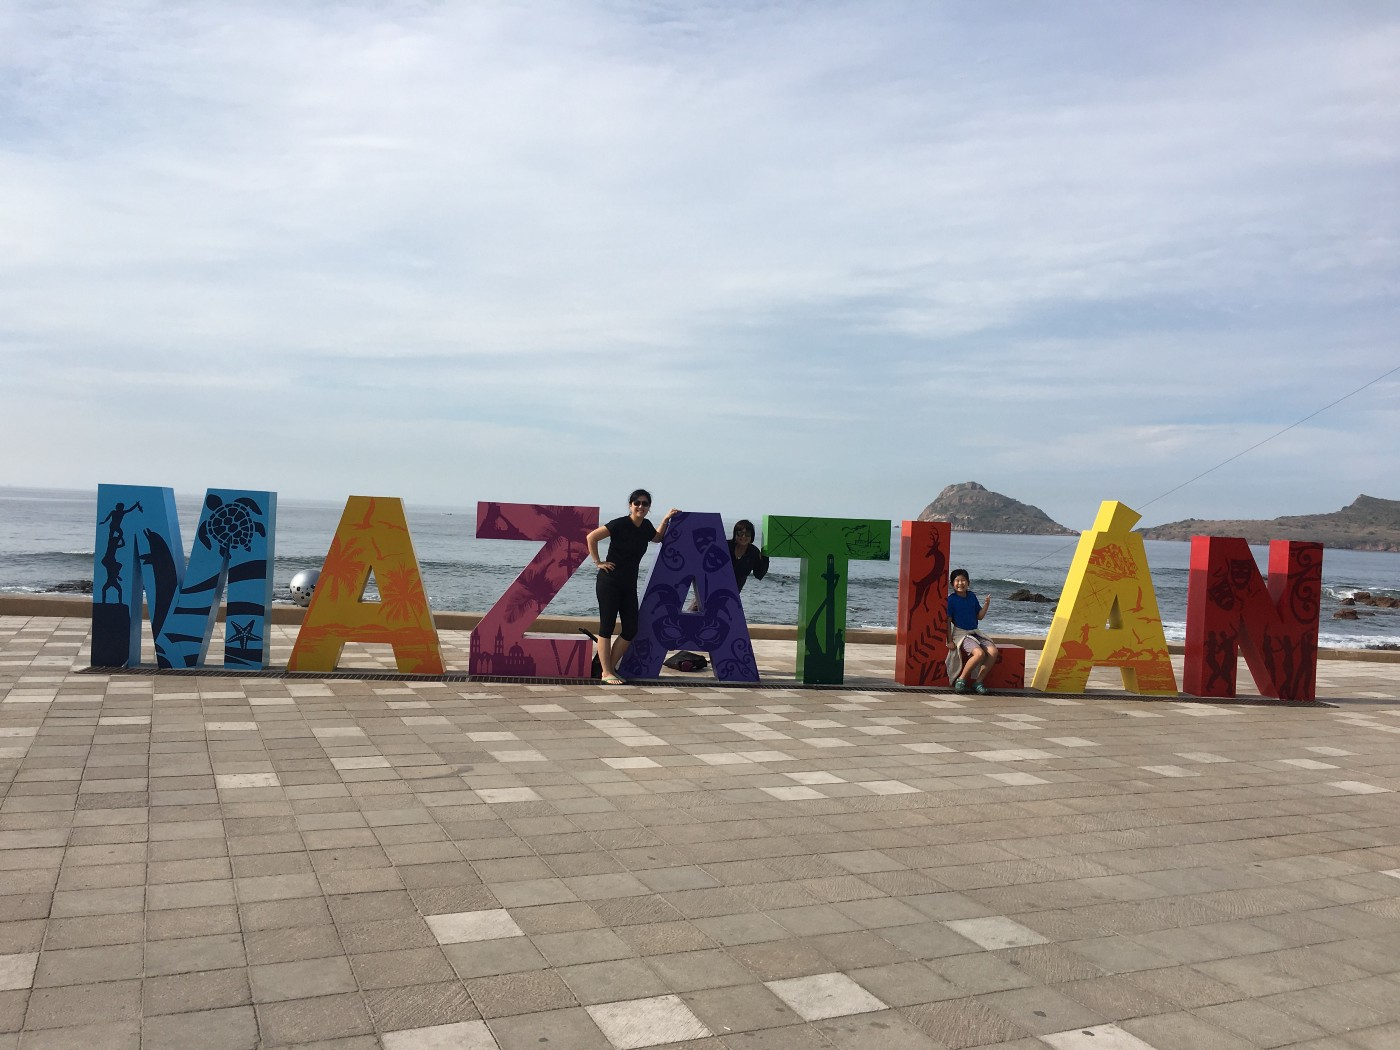 Three people pose next to the large letters (each about 5' tall) spelling out Mazatlan